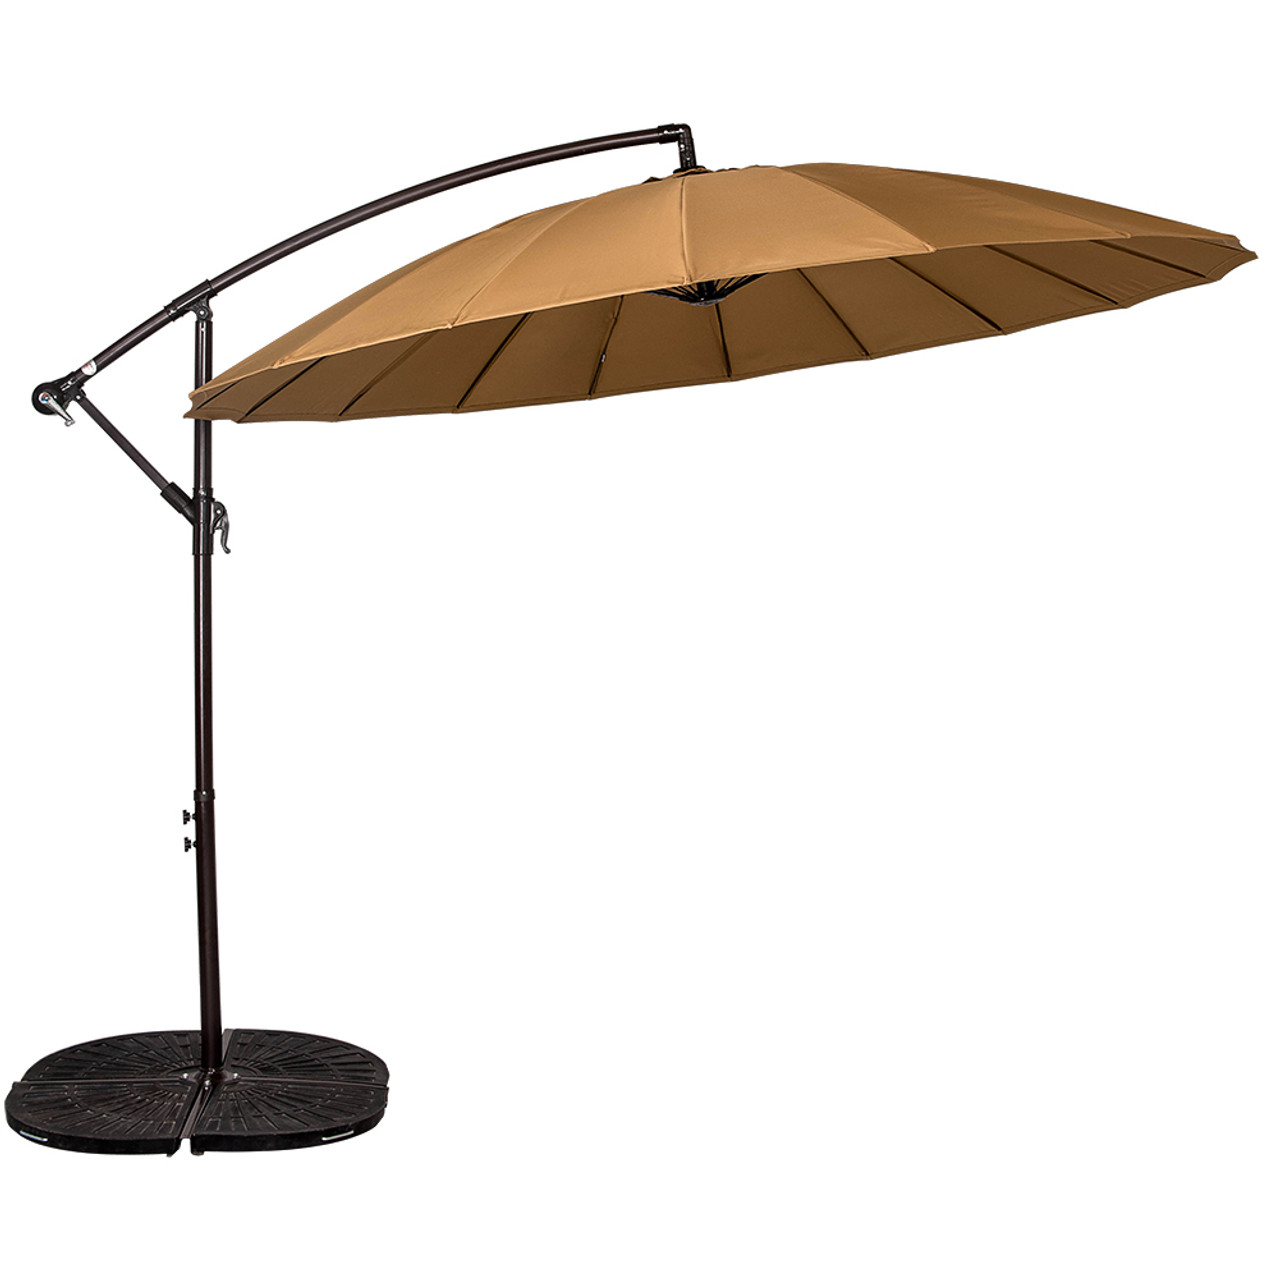 deluxe gazebo hanging sun market square shade patio umbrella a umbrellas offset itm outdoor